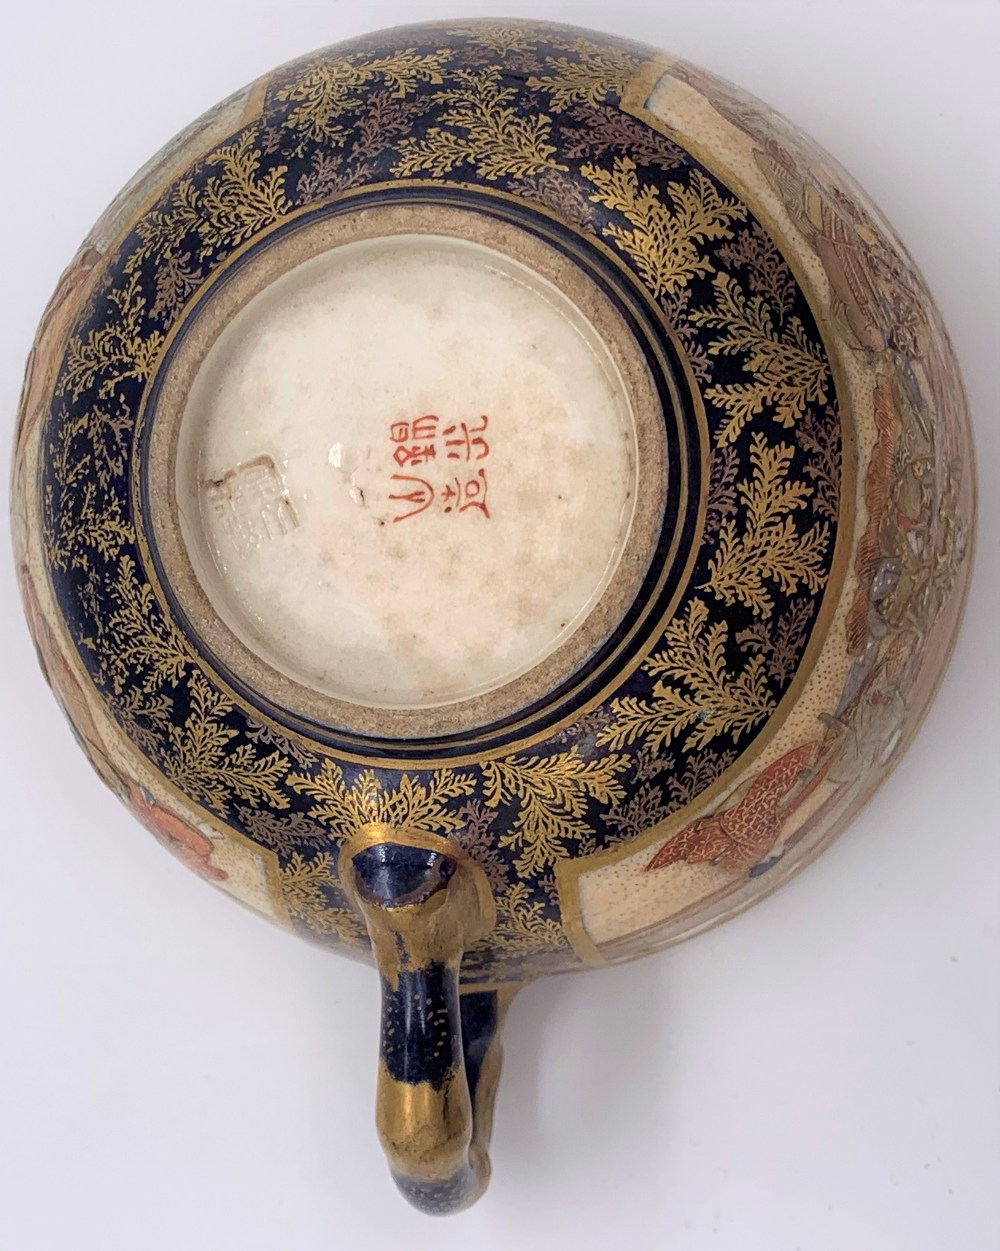 KINKOZAN; a Japanese Meiji period Satsuma cup and saucer decorated with panels of seated figures - Image 8 of 9